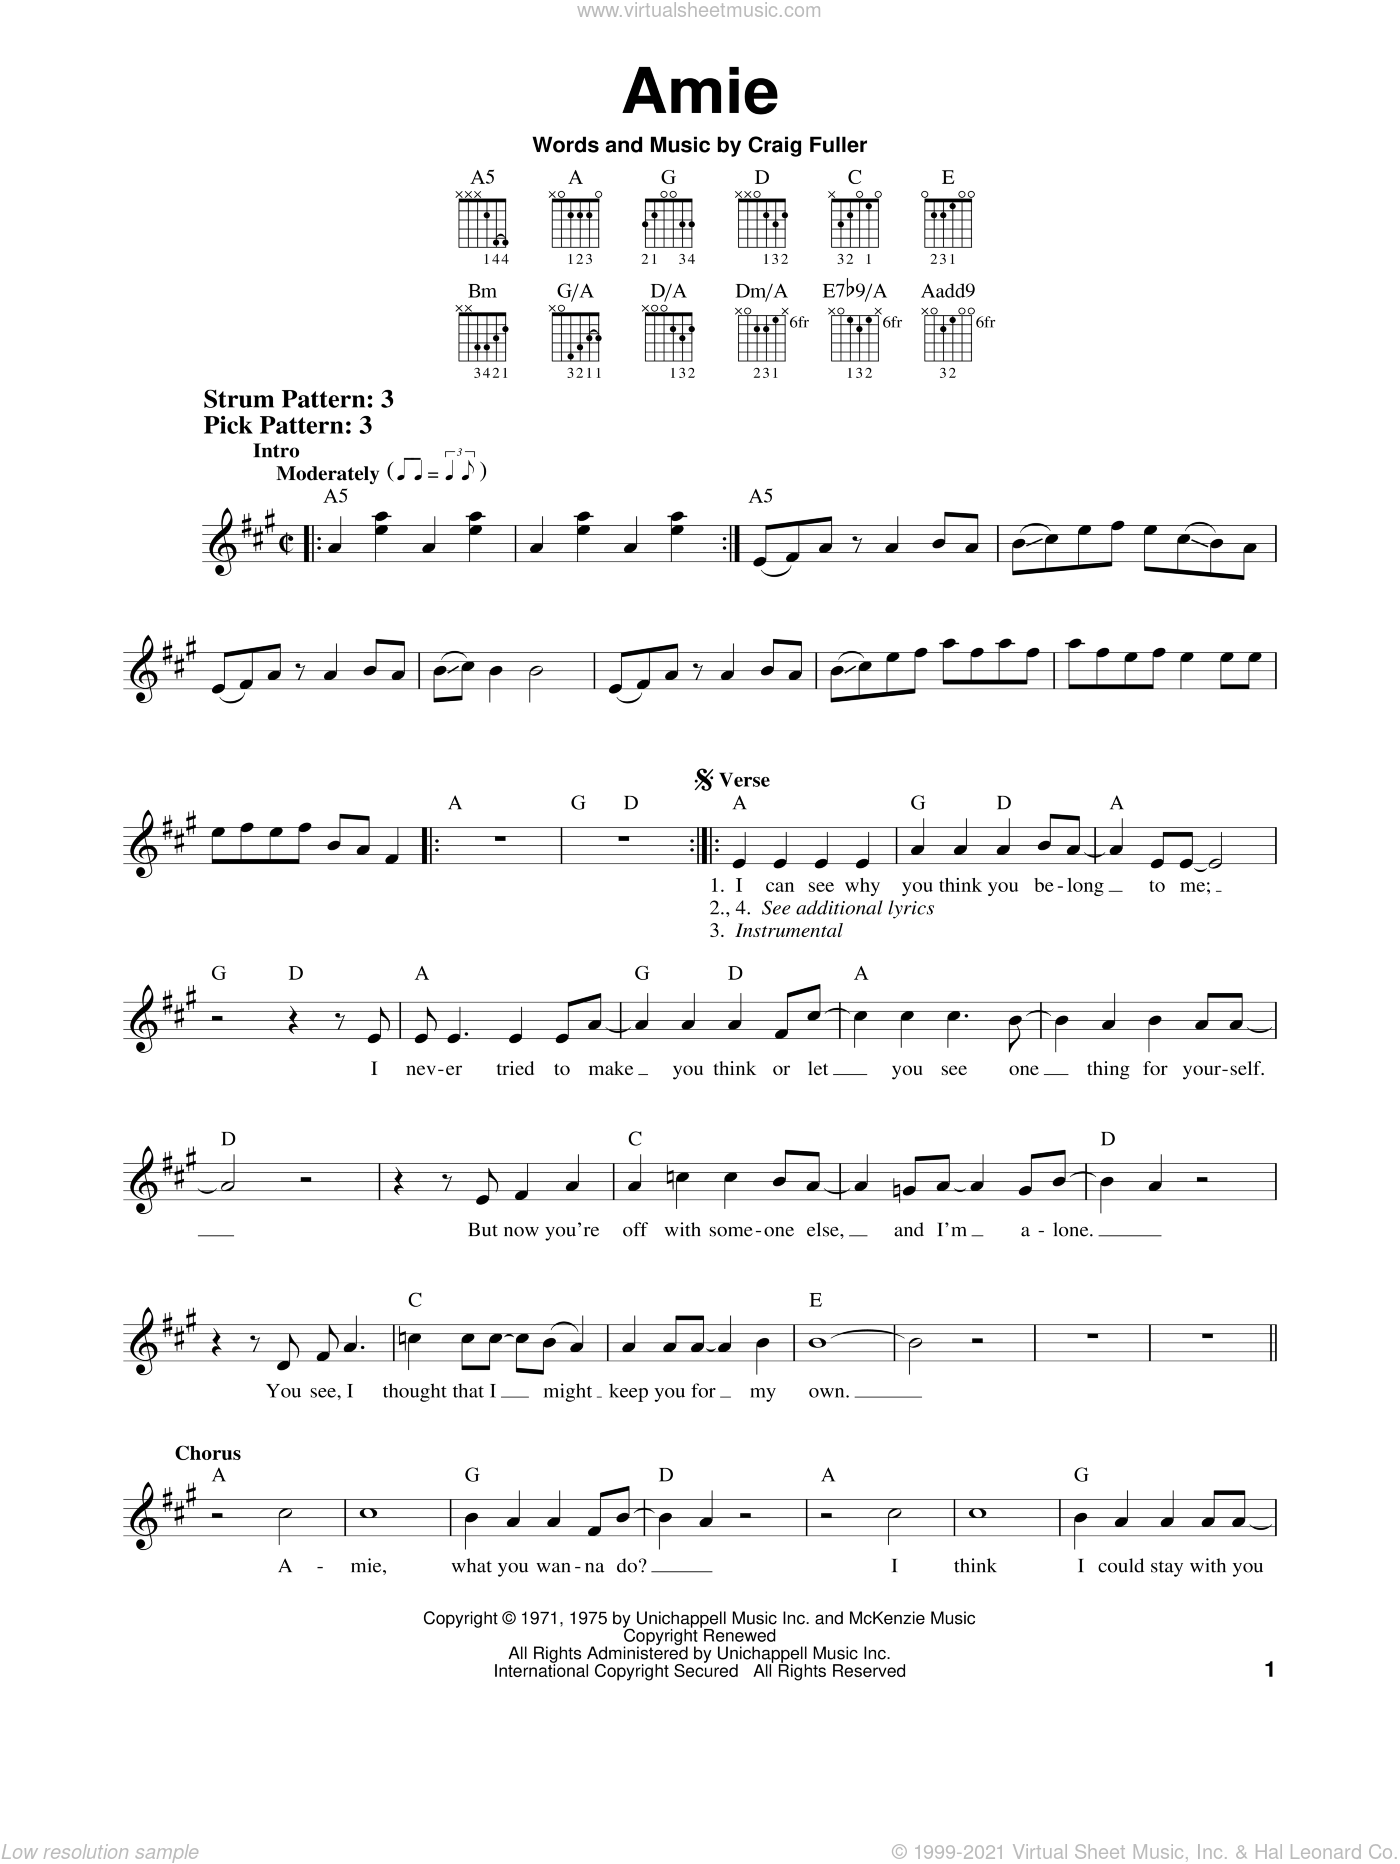 Amie sheet music for guitar solo (chords) by Craig Fuller